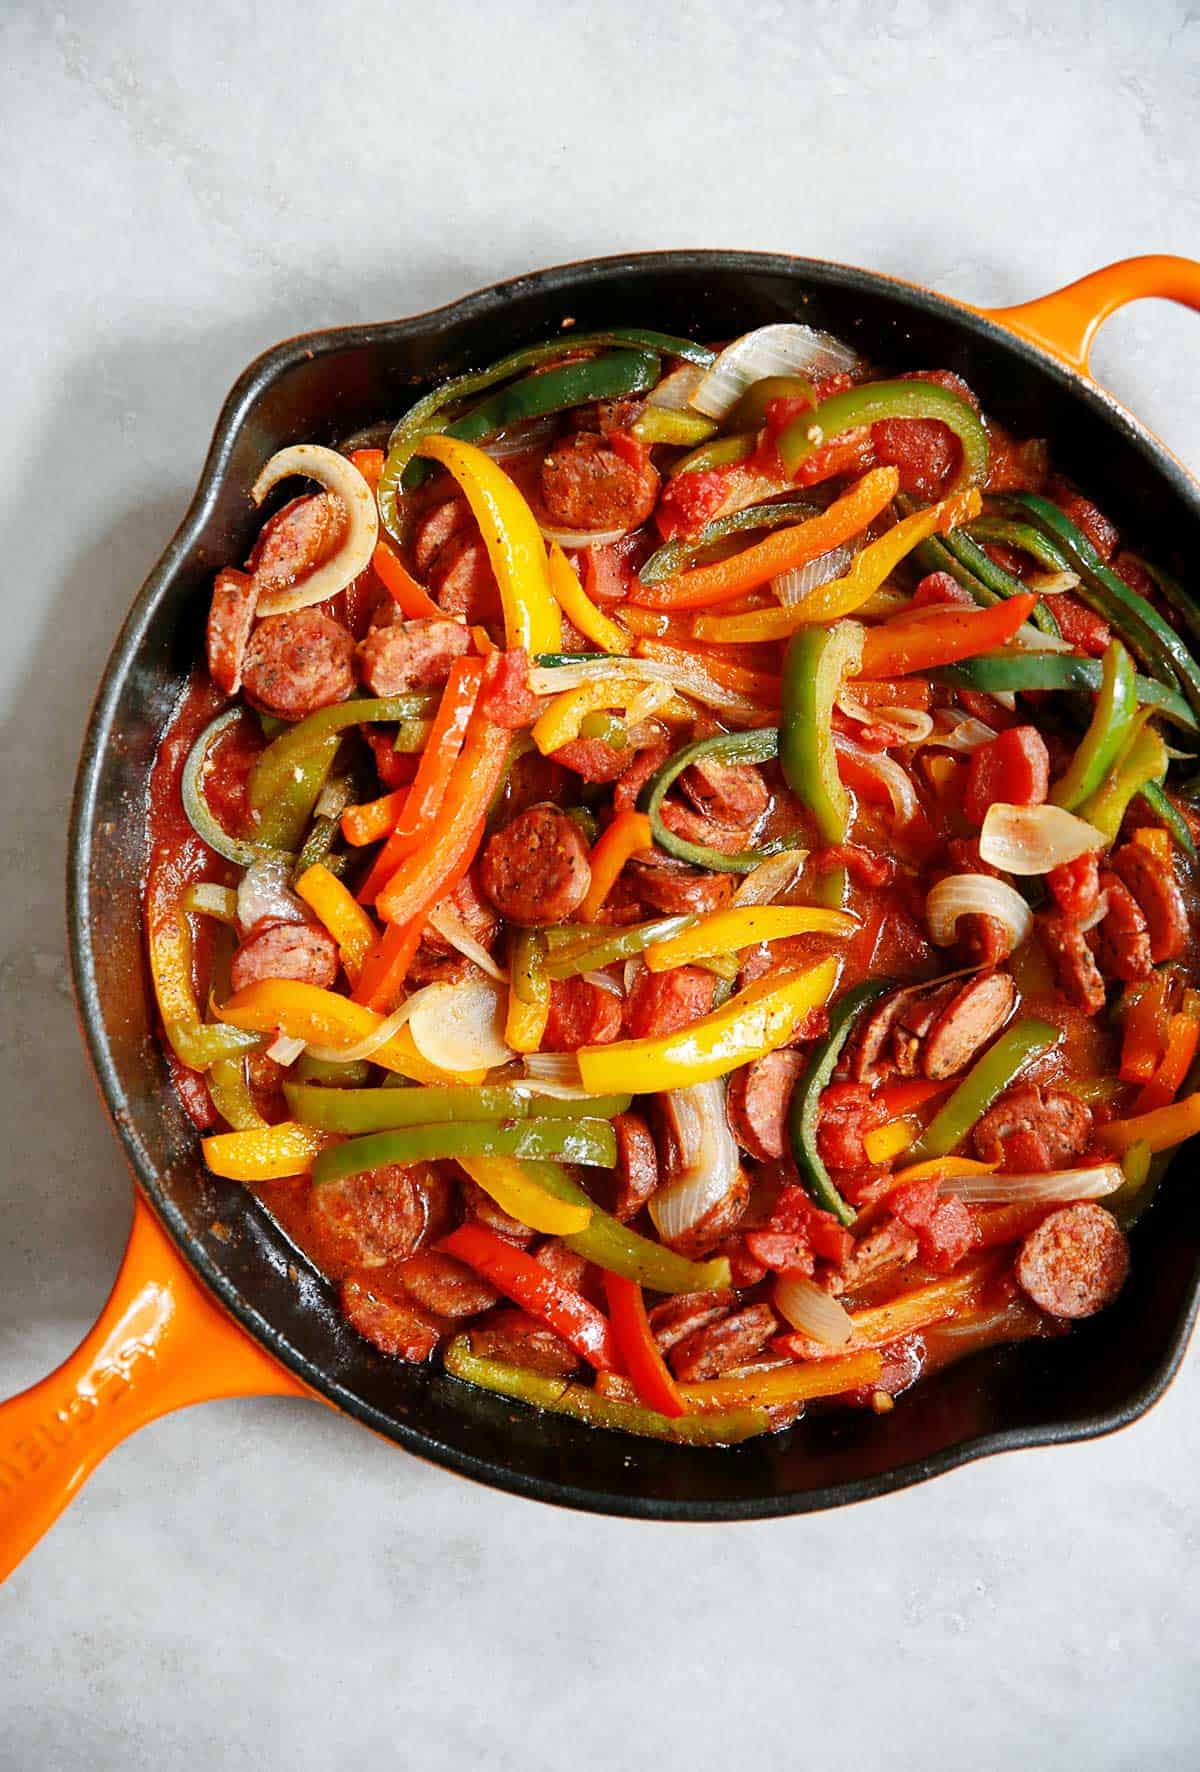 How to make Sausage and Peppers